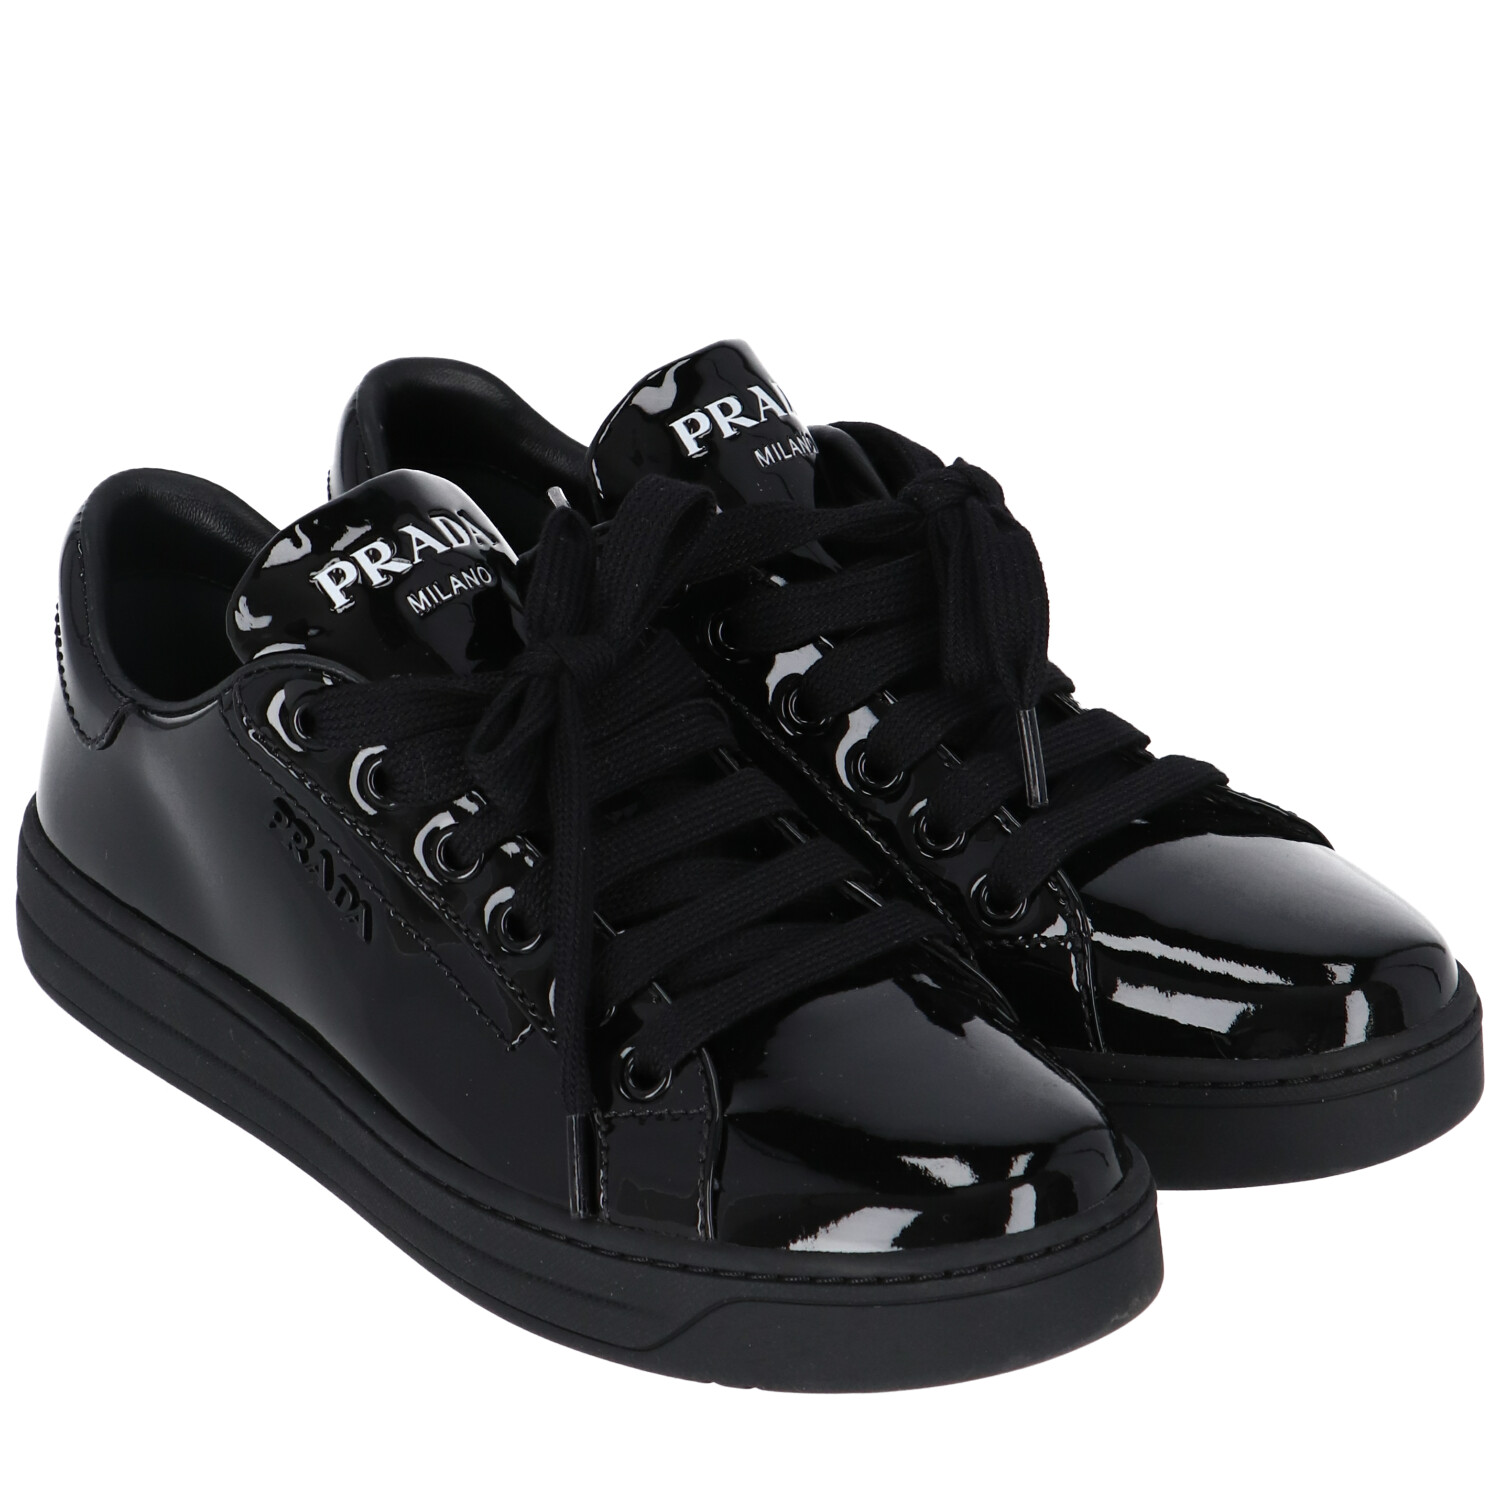 Prada Black Patent Leather Sneakers